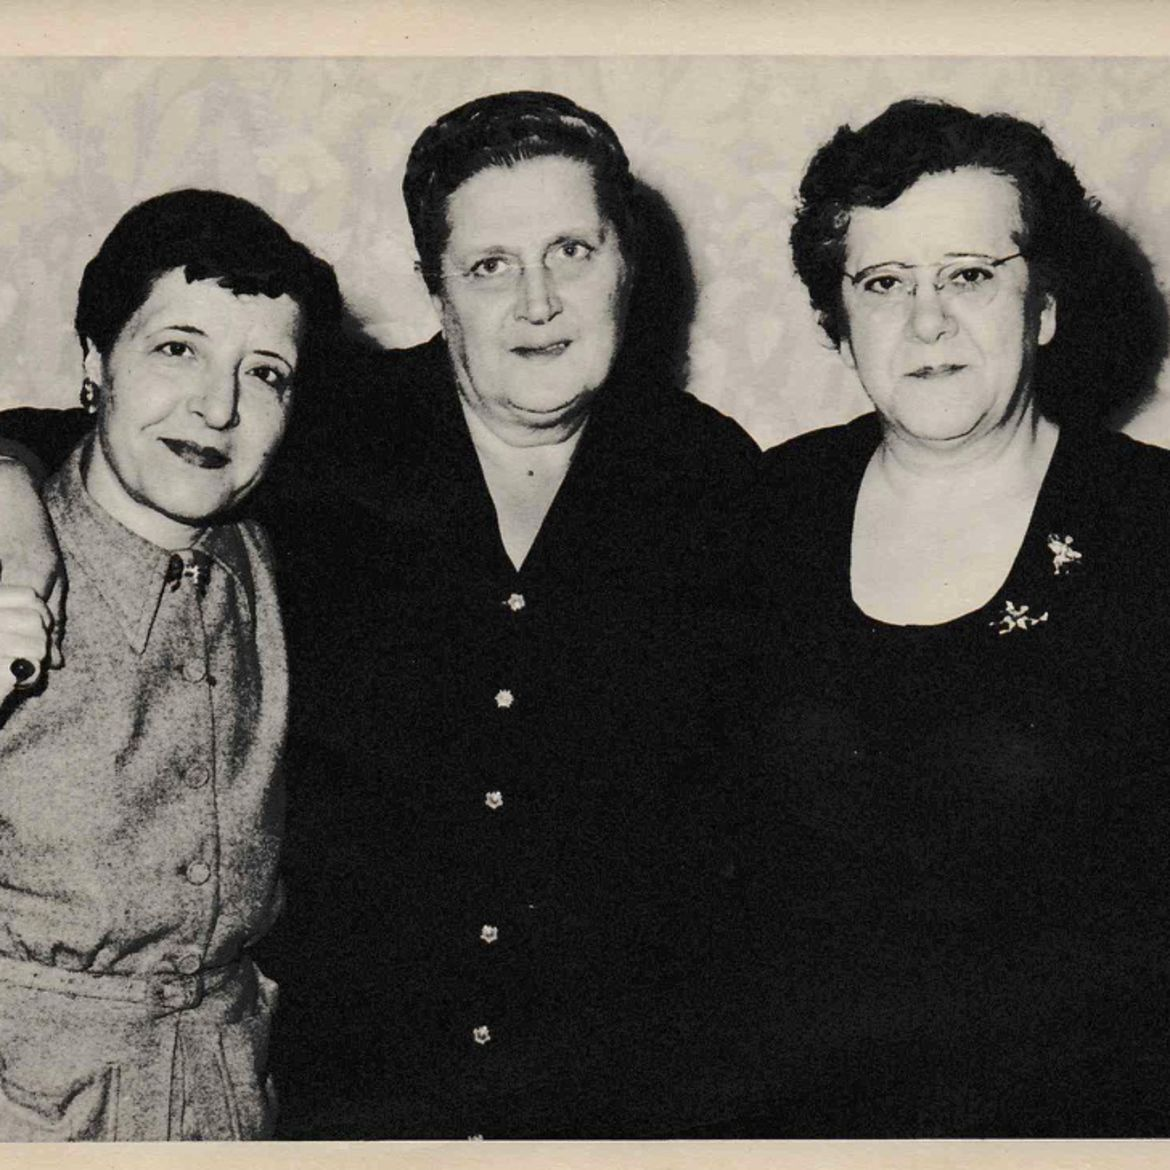 Cover Photo: Author's great-grandmother Rose (left) with family members. Photo courtesy of the author.